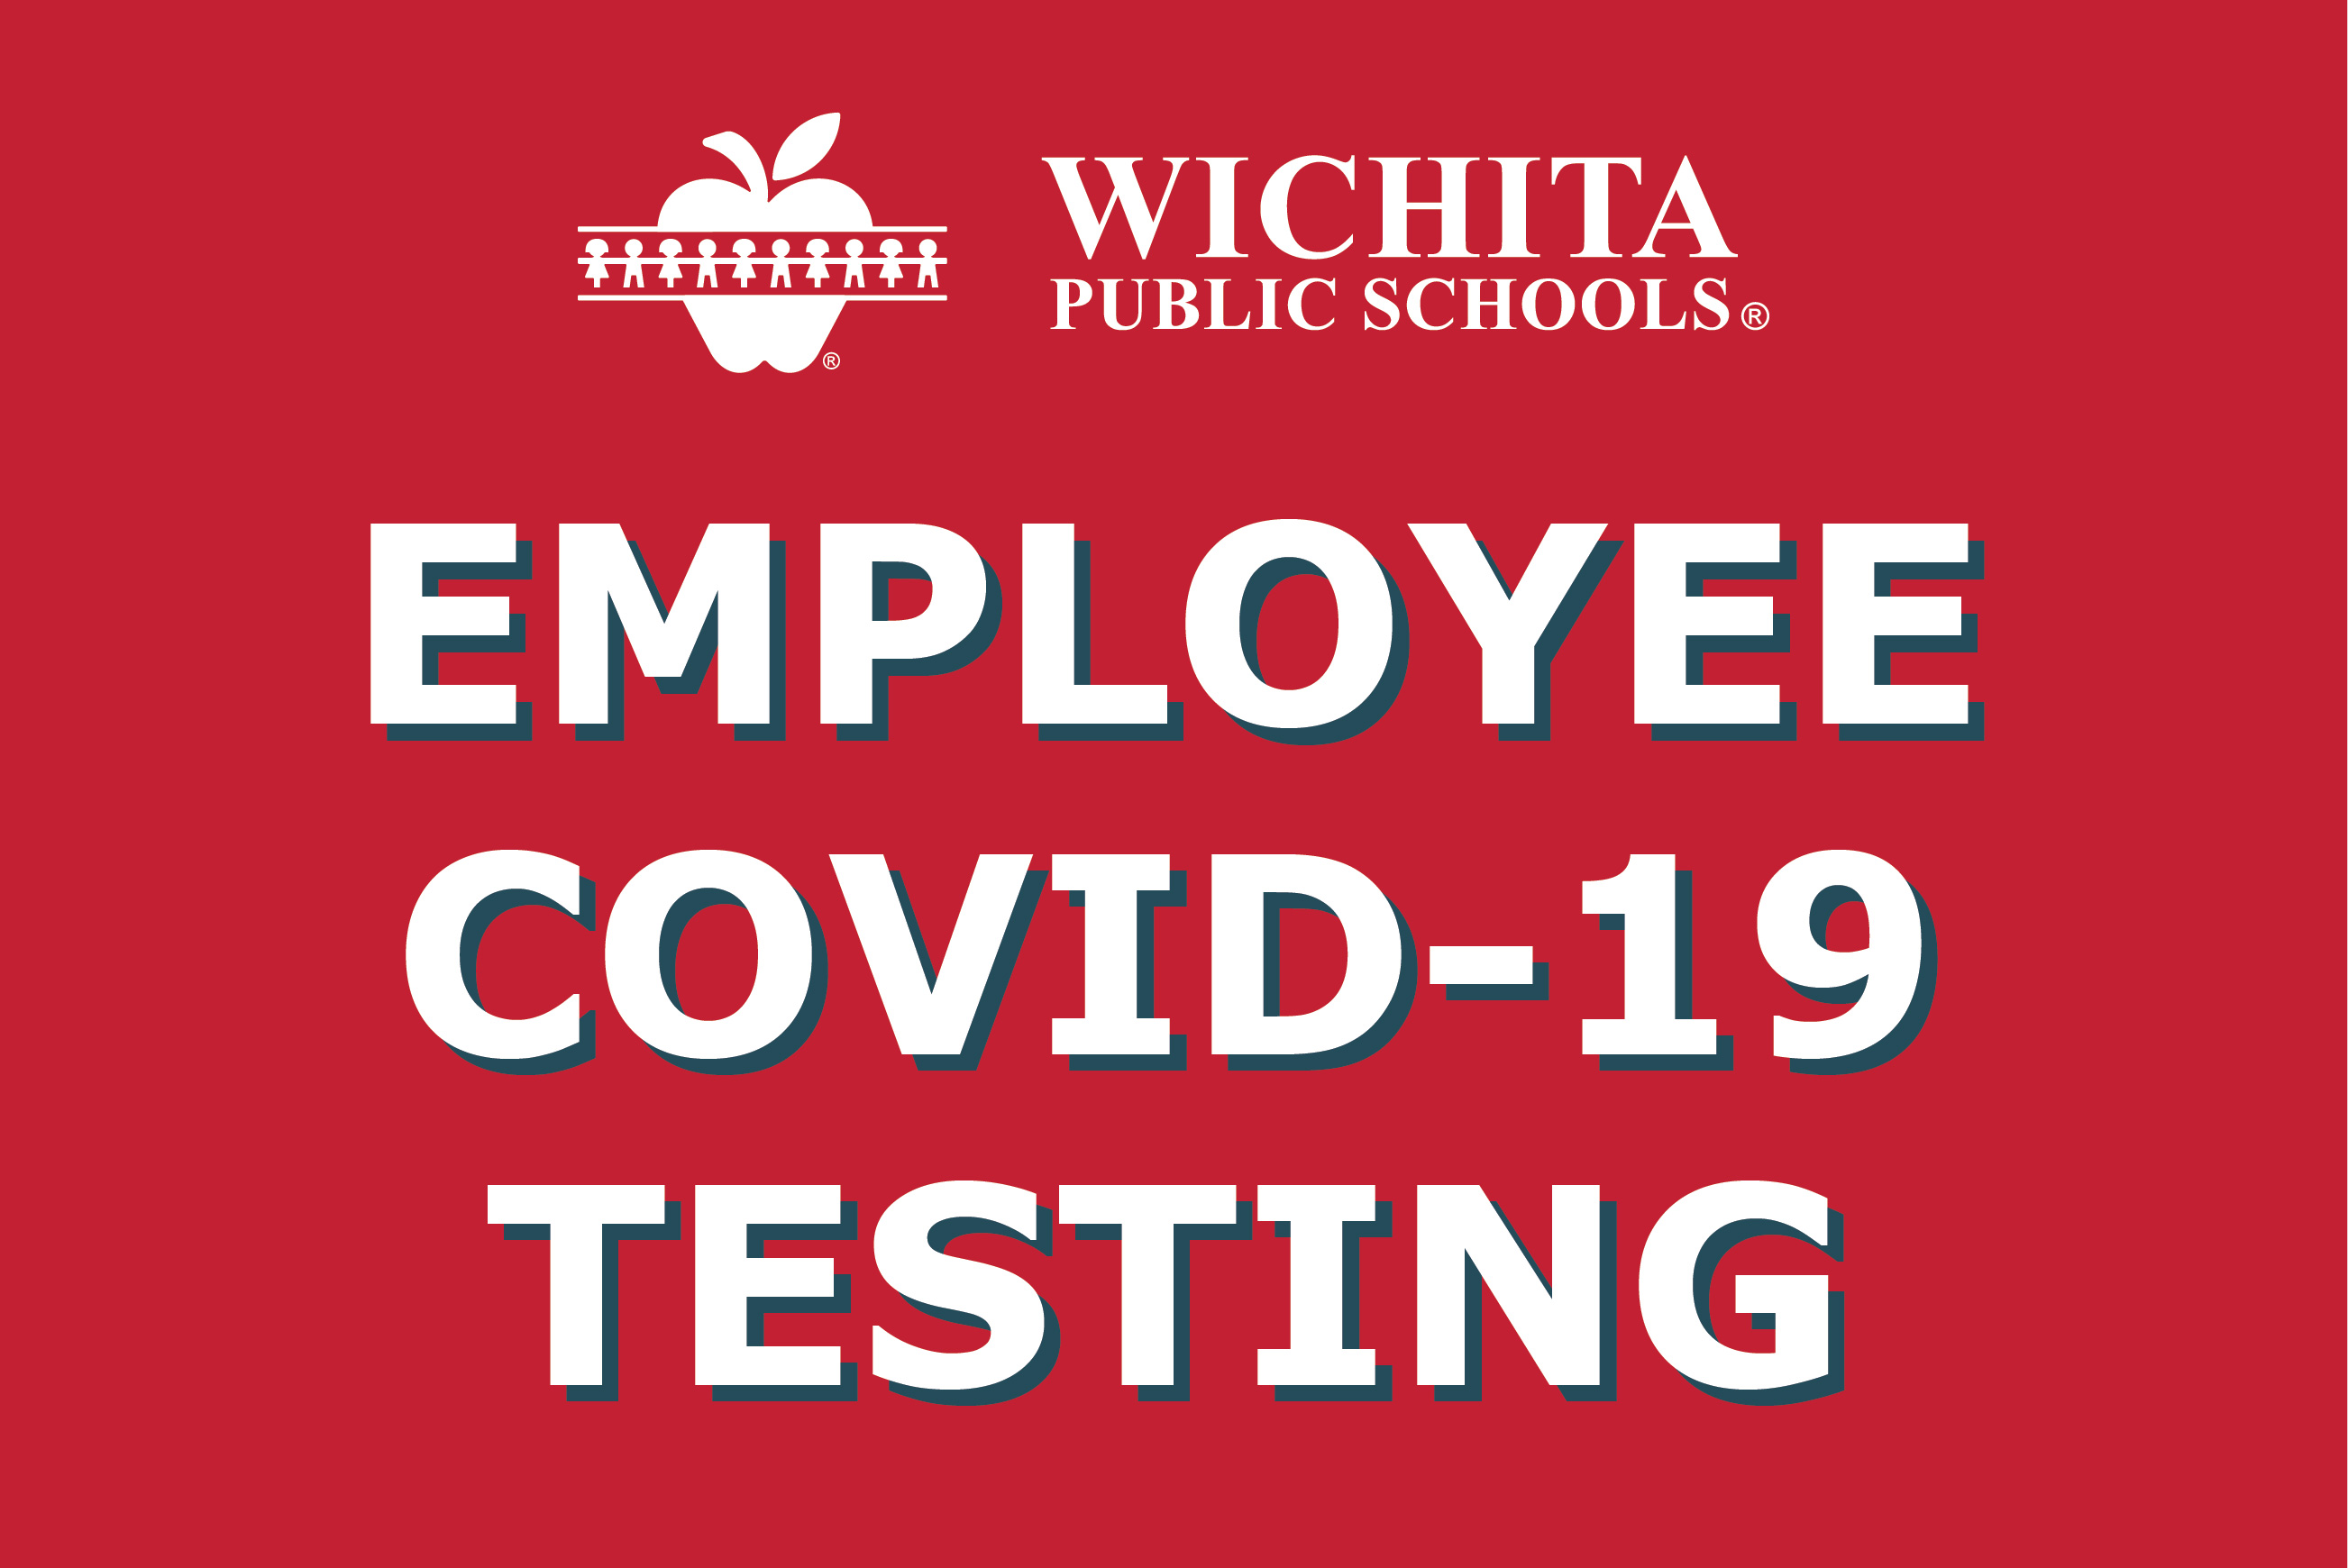 WPS offering COVID-19 tests for symptomatic and asymptomatic employees